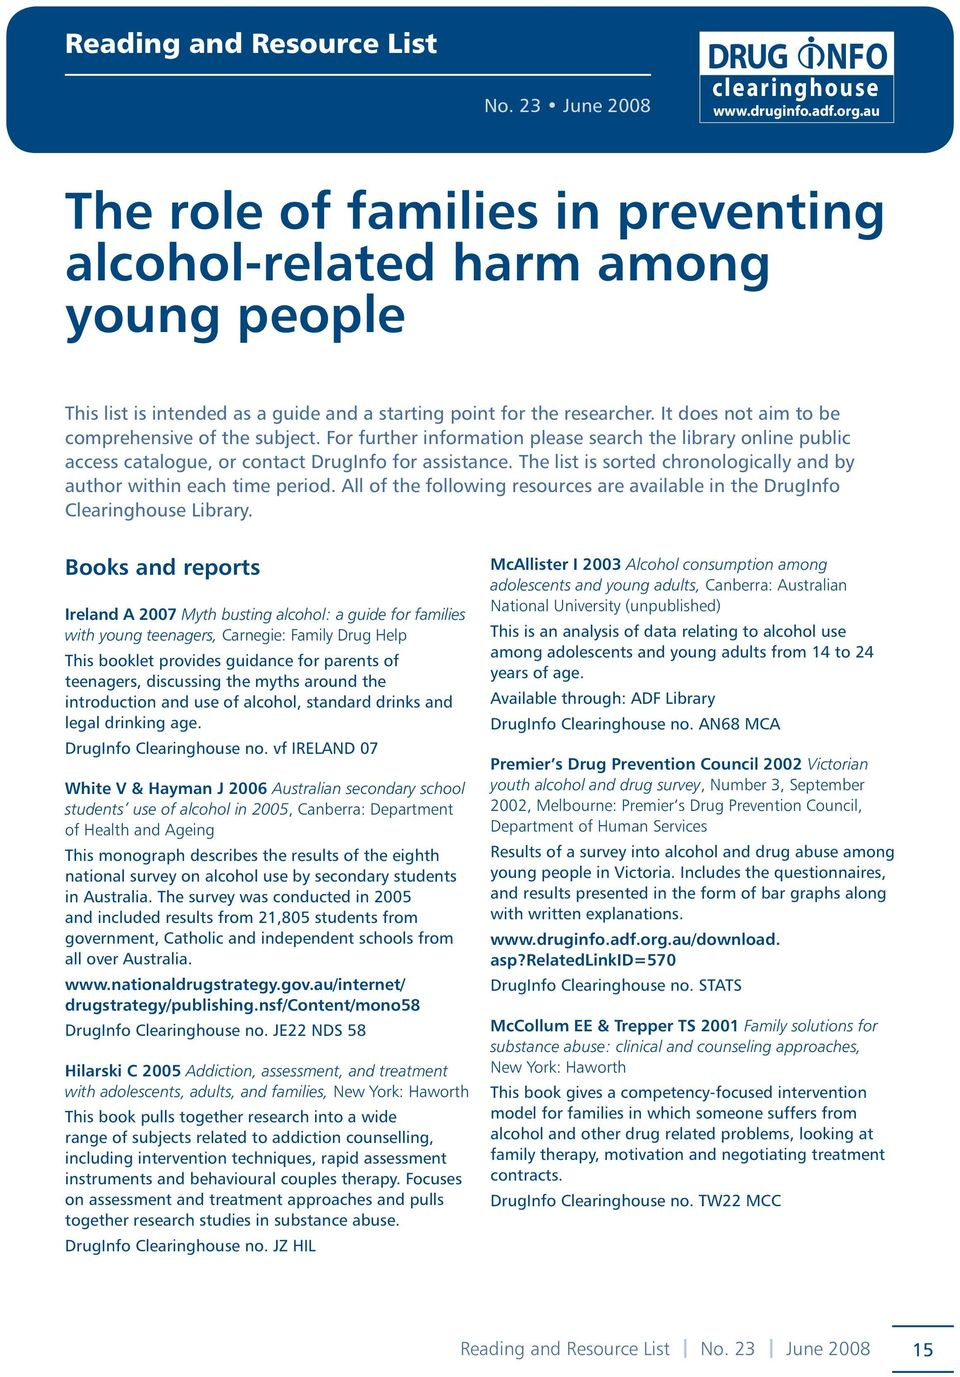 It does not aim to be comprehensive of the subject. For further information please search the library online public access catalogue, or contact DrugInfo for assistance.